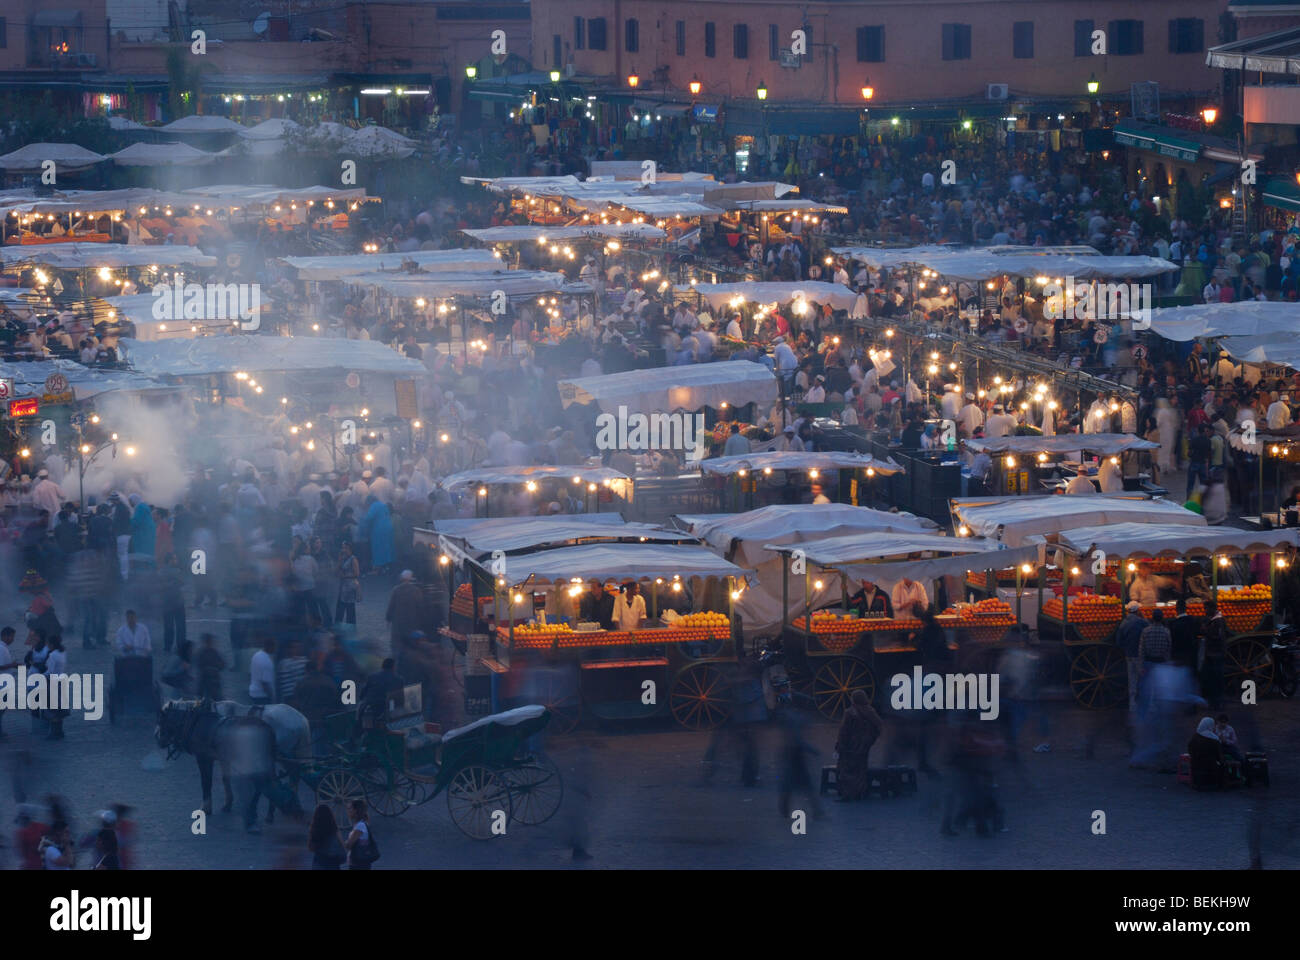 Busy food stalls of Djemaa el Fna, Marrakesh, Morocco at dawn. - Stock Image